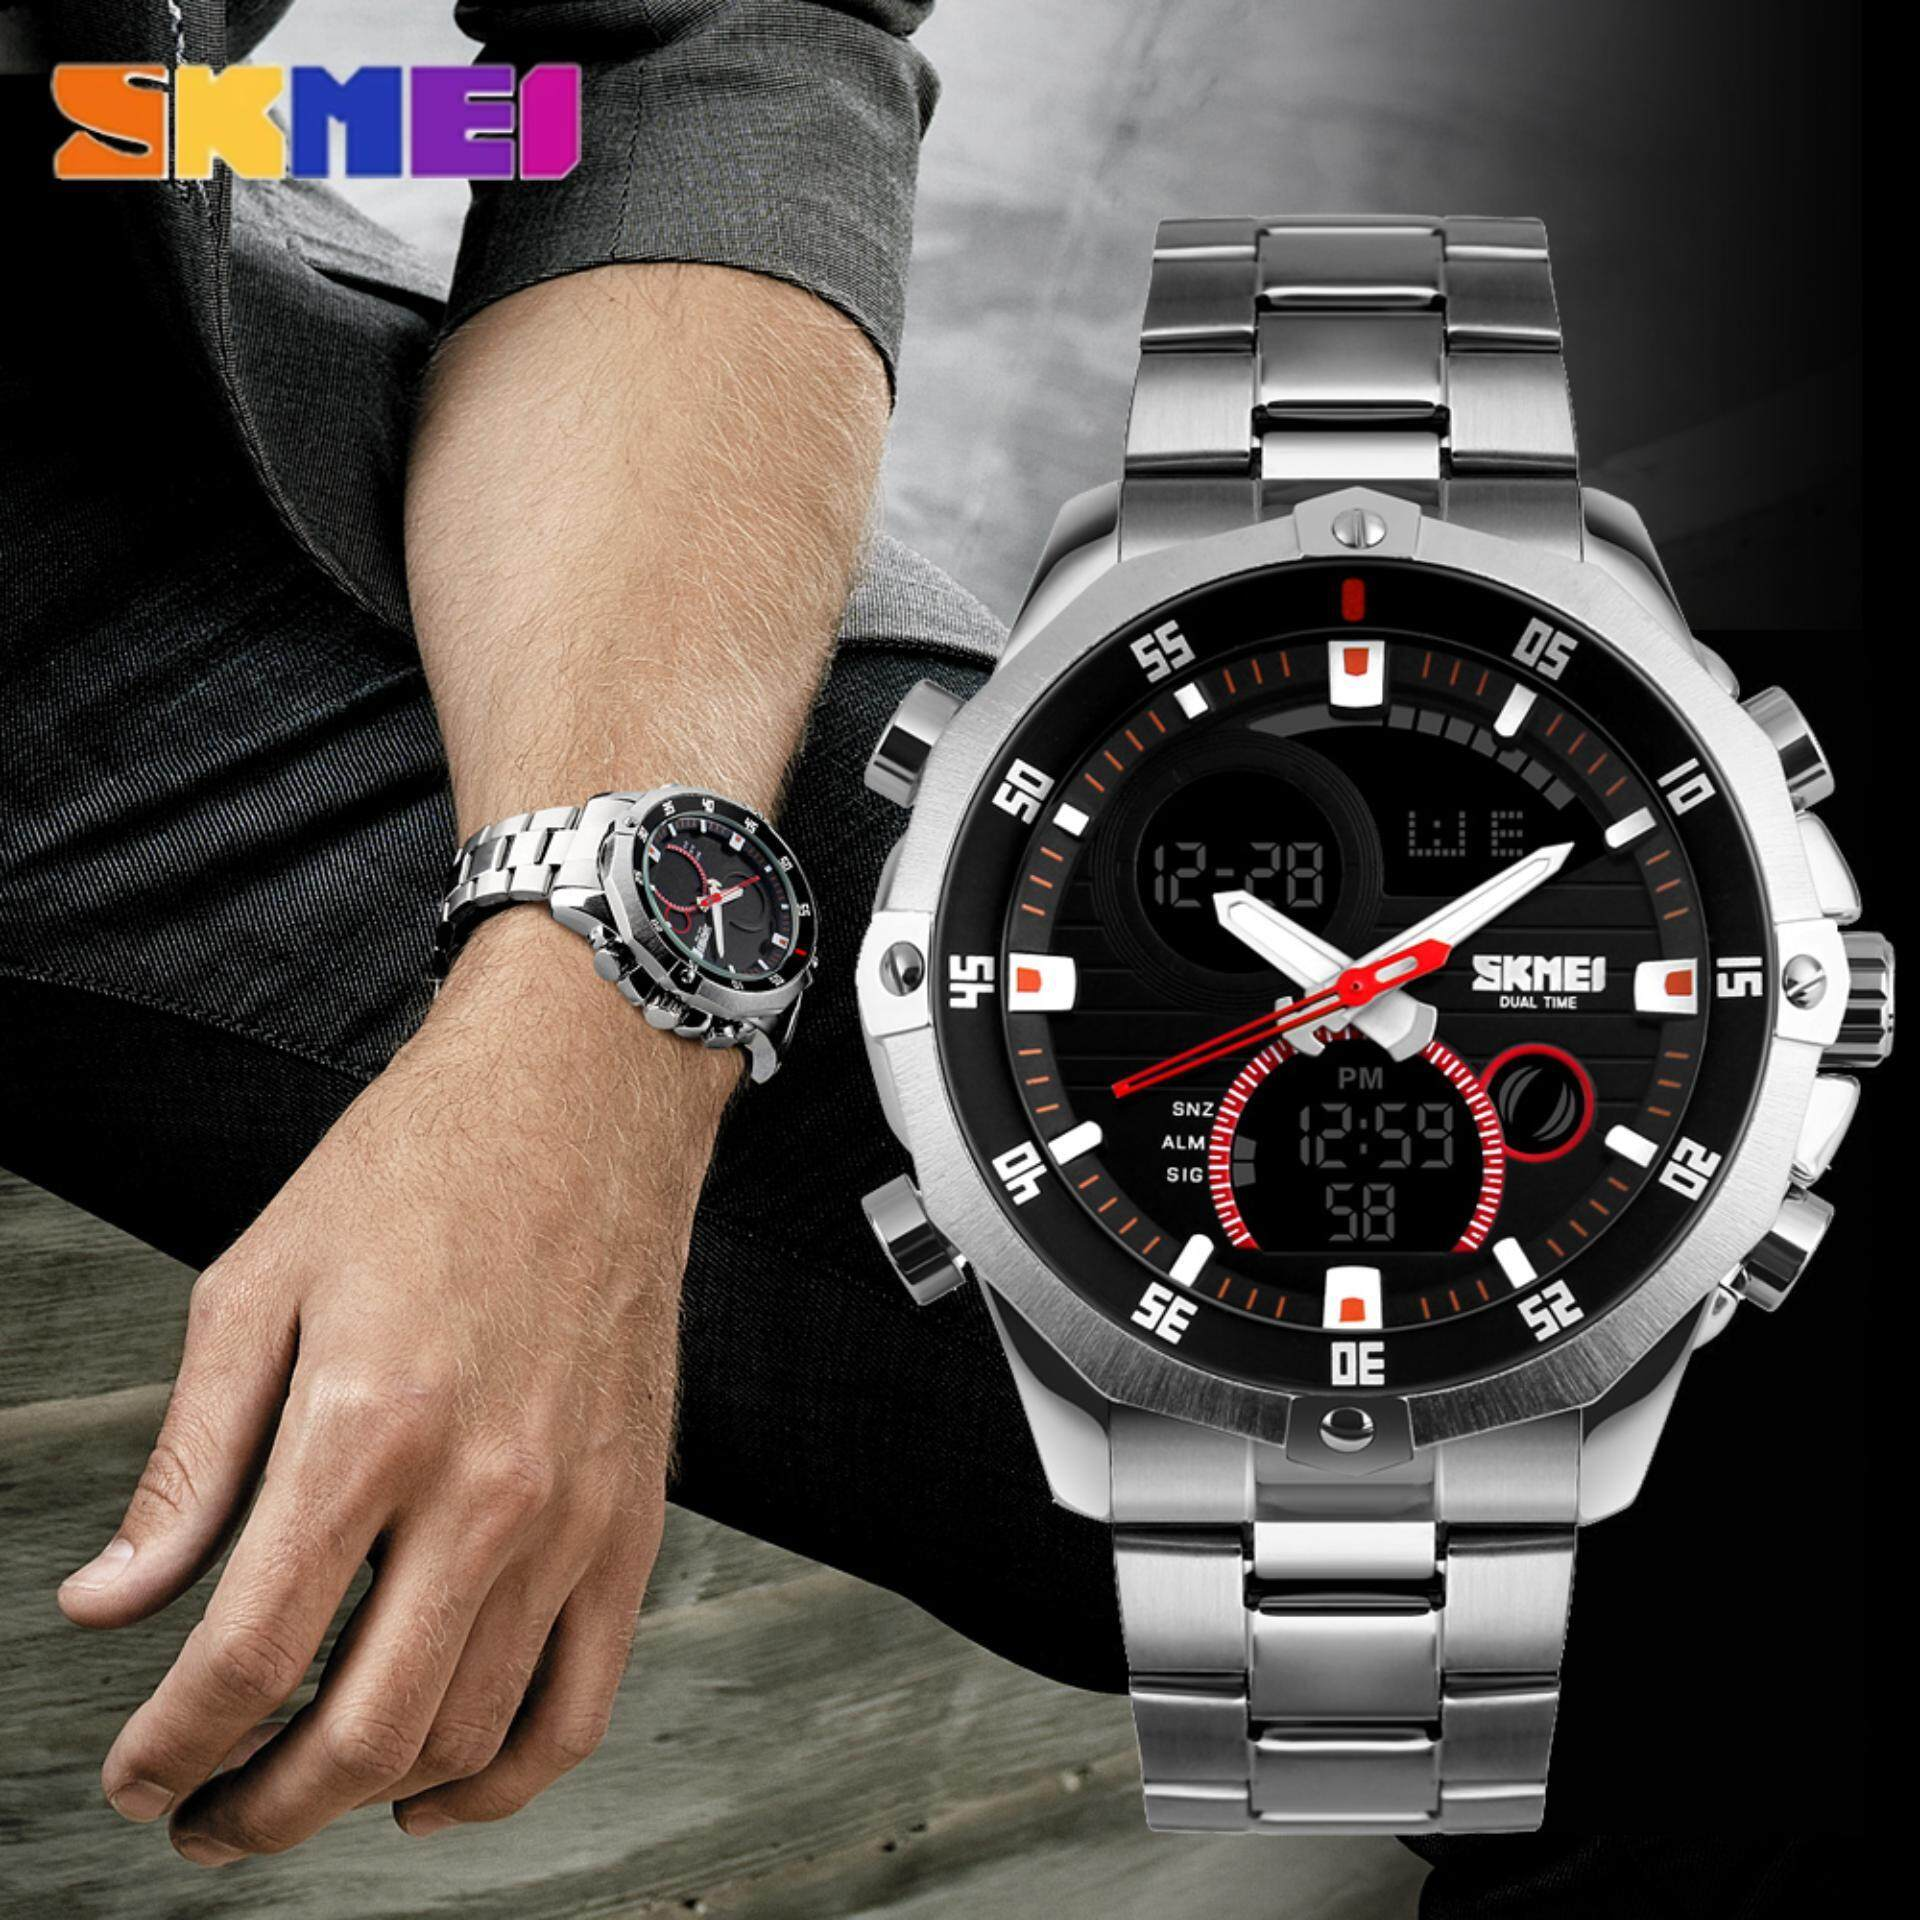 SKMEI Men Business Quartz Watches Stainless Steel Waterproof Watch Dual Display LED Digital Alarm Large Dial